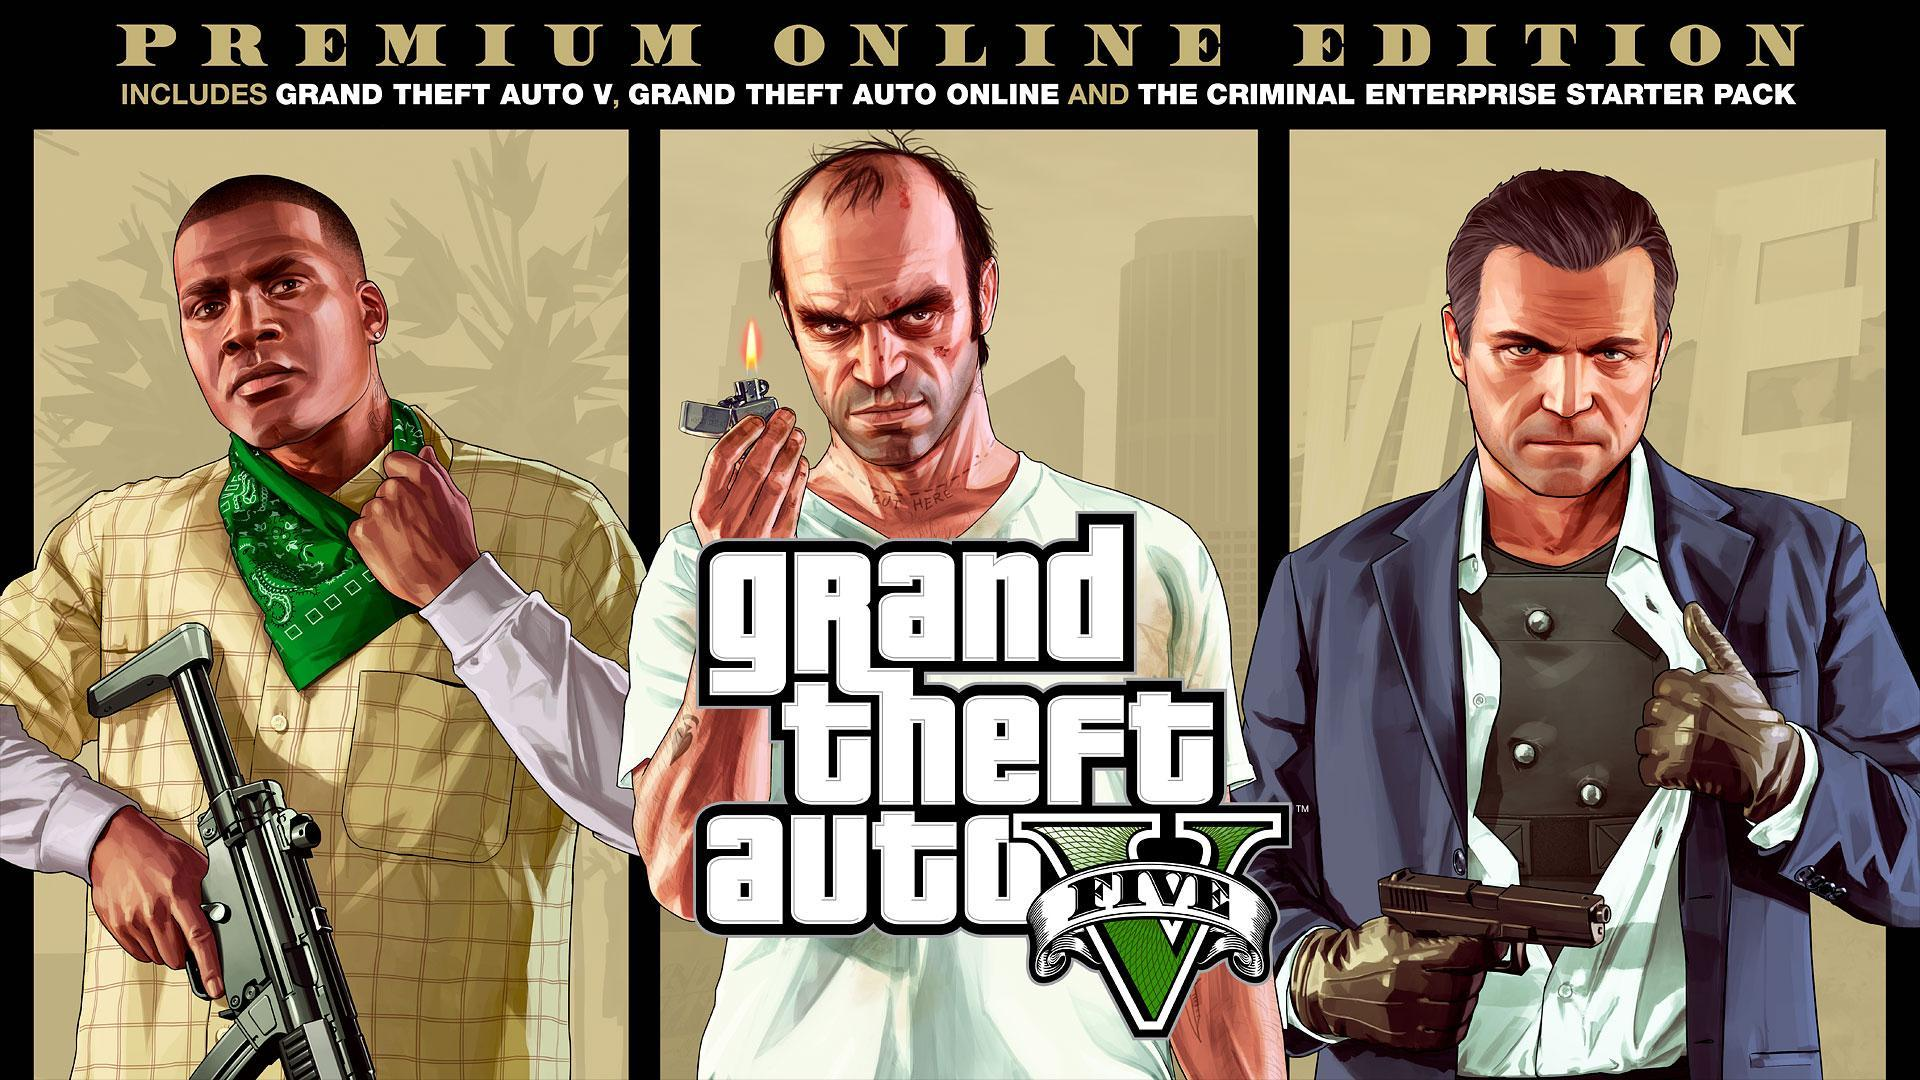 Grand Theft Auto V Premium Online Edition - Includes